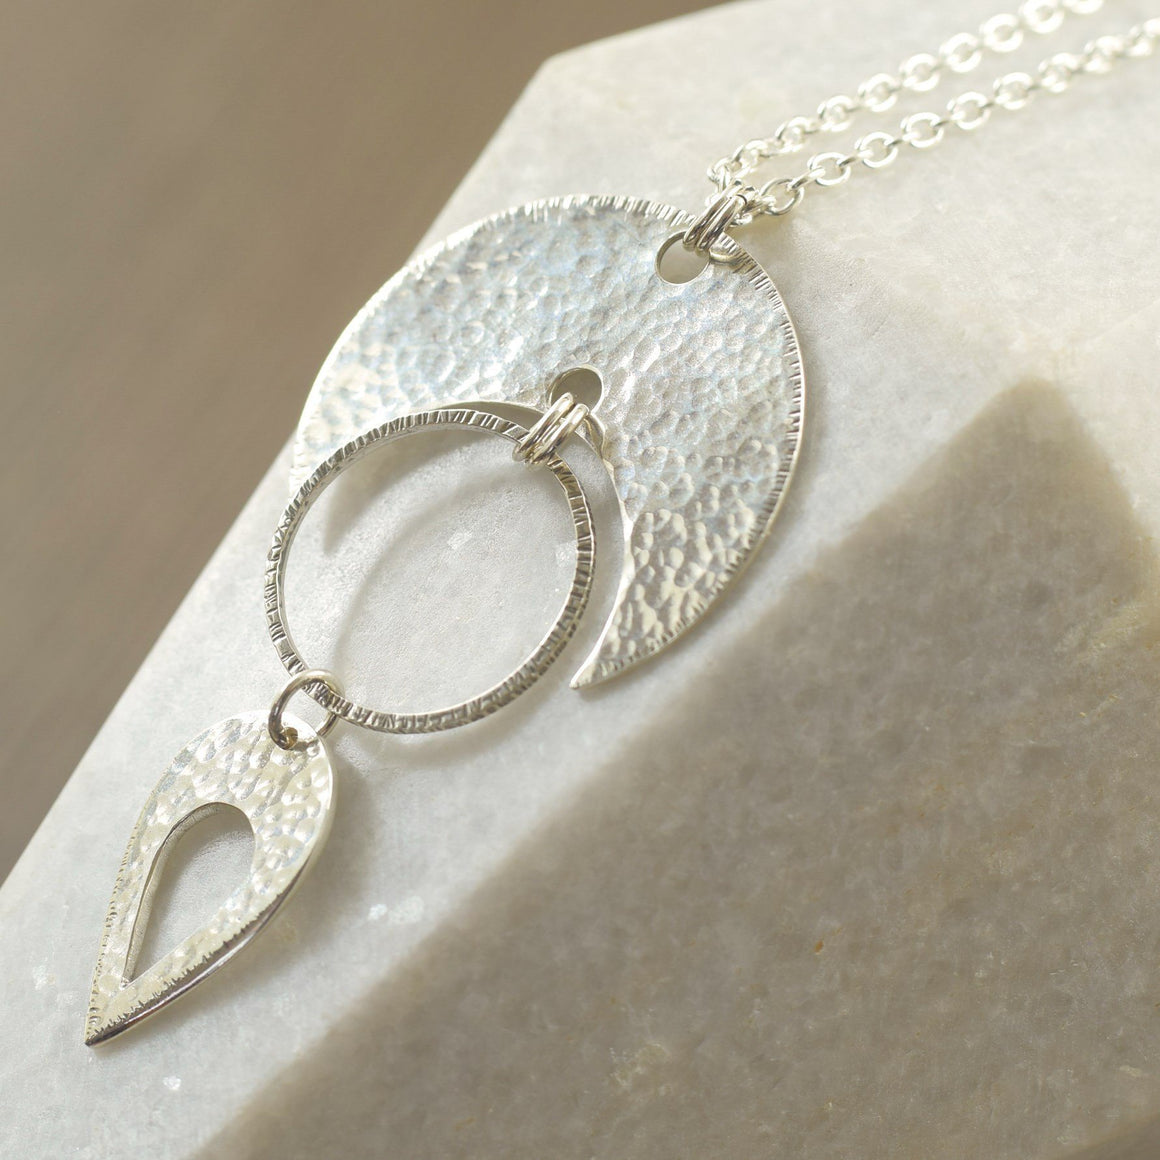 Statement necklace with hammered teardrop sterling silver Long necklace